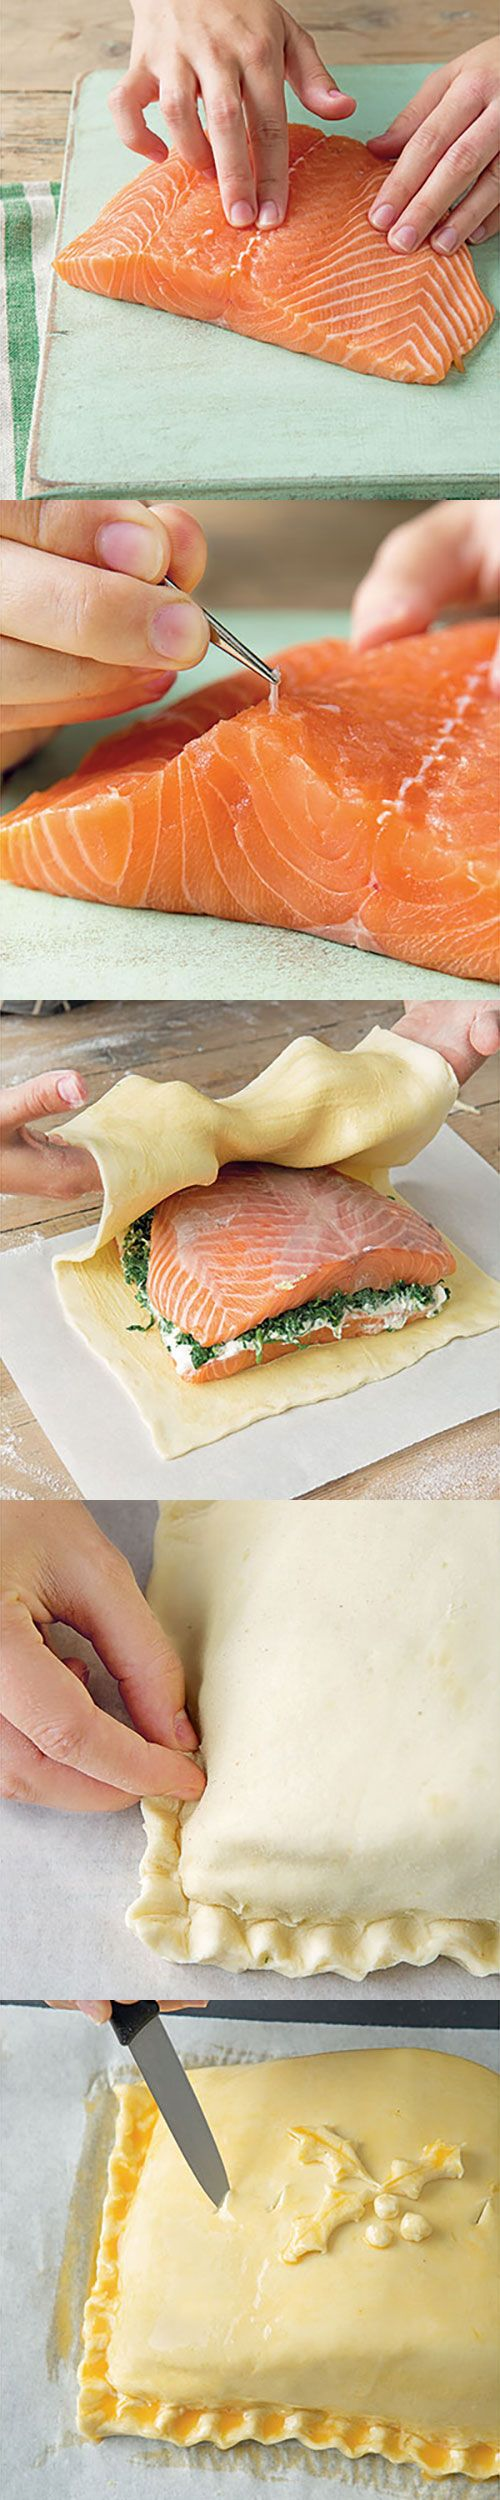 How to make salmon en croûte. A show stopper that can be stress and fuss free once you know the knack!